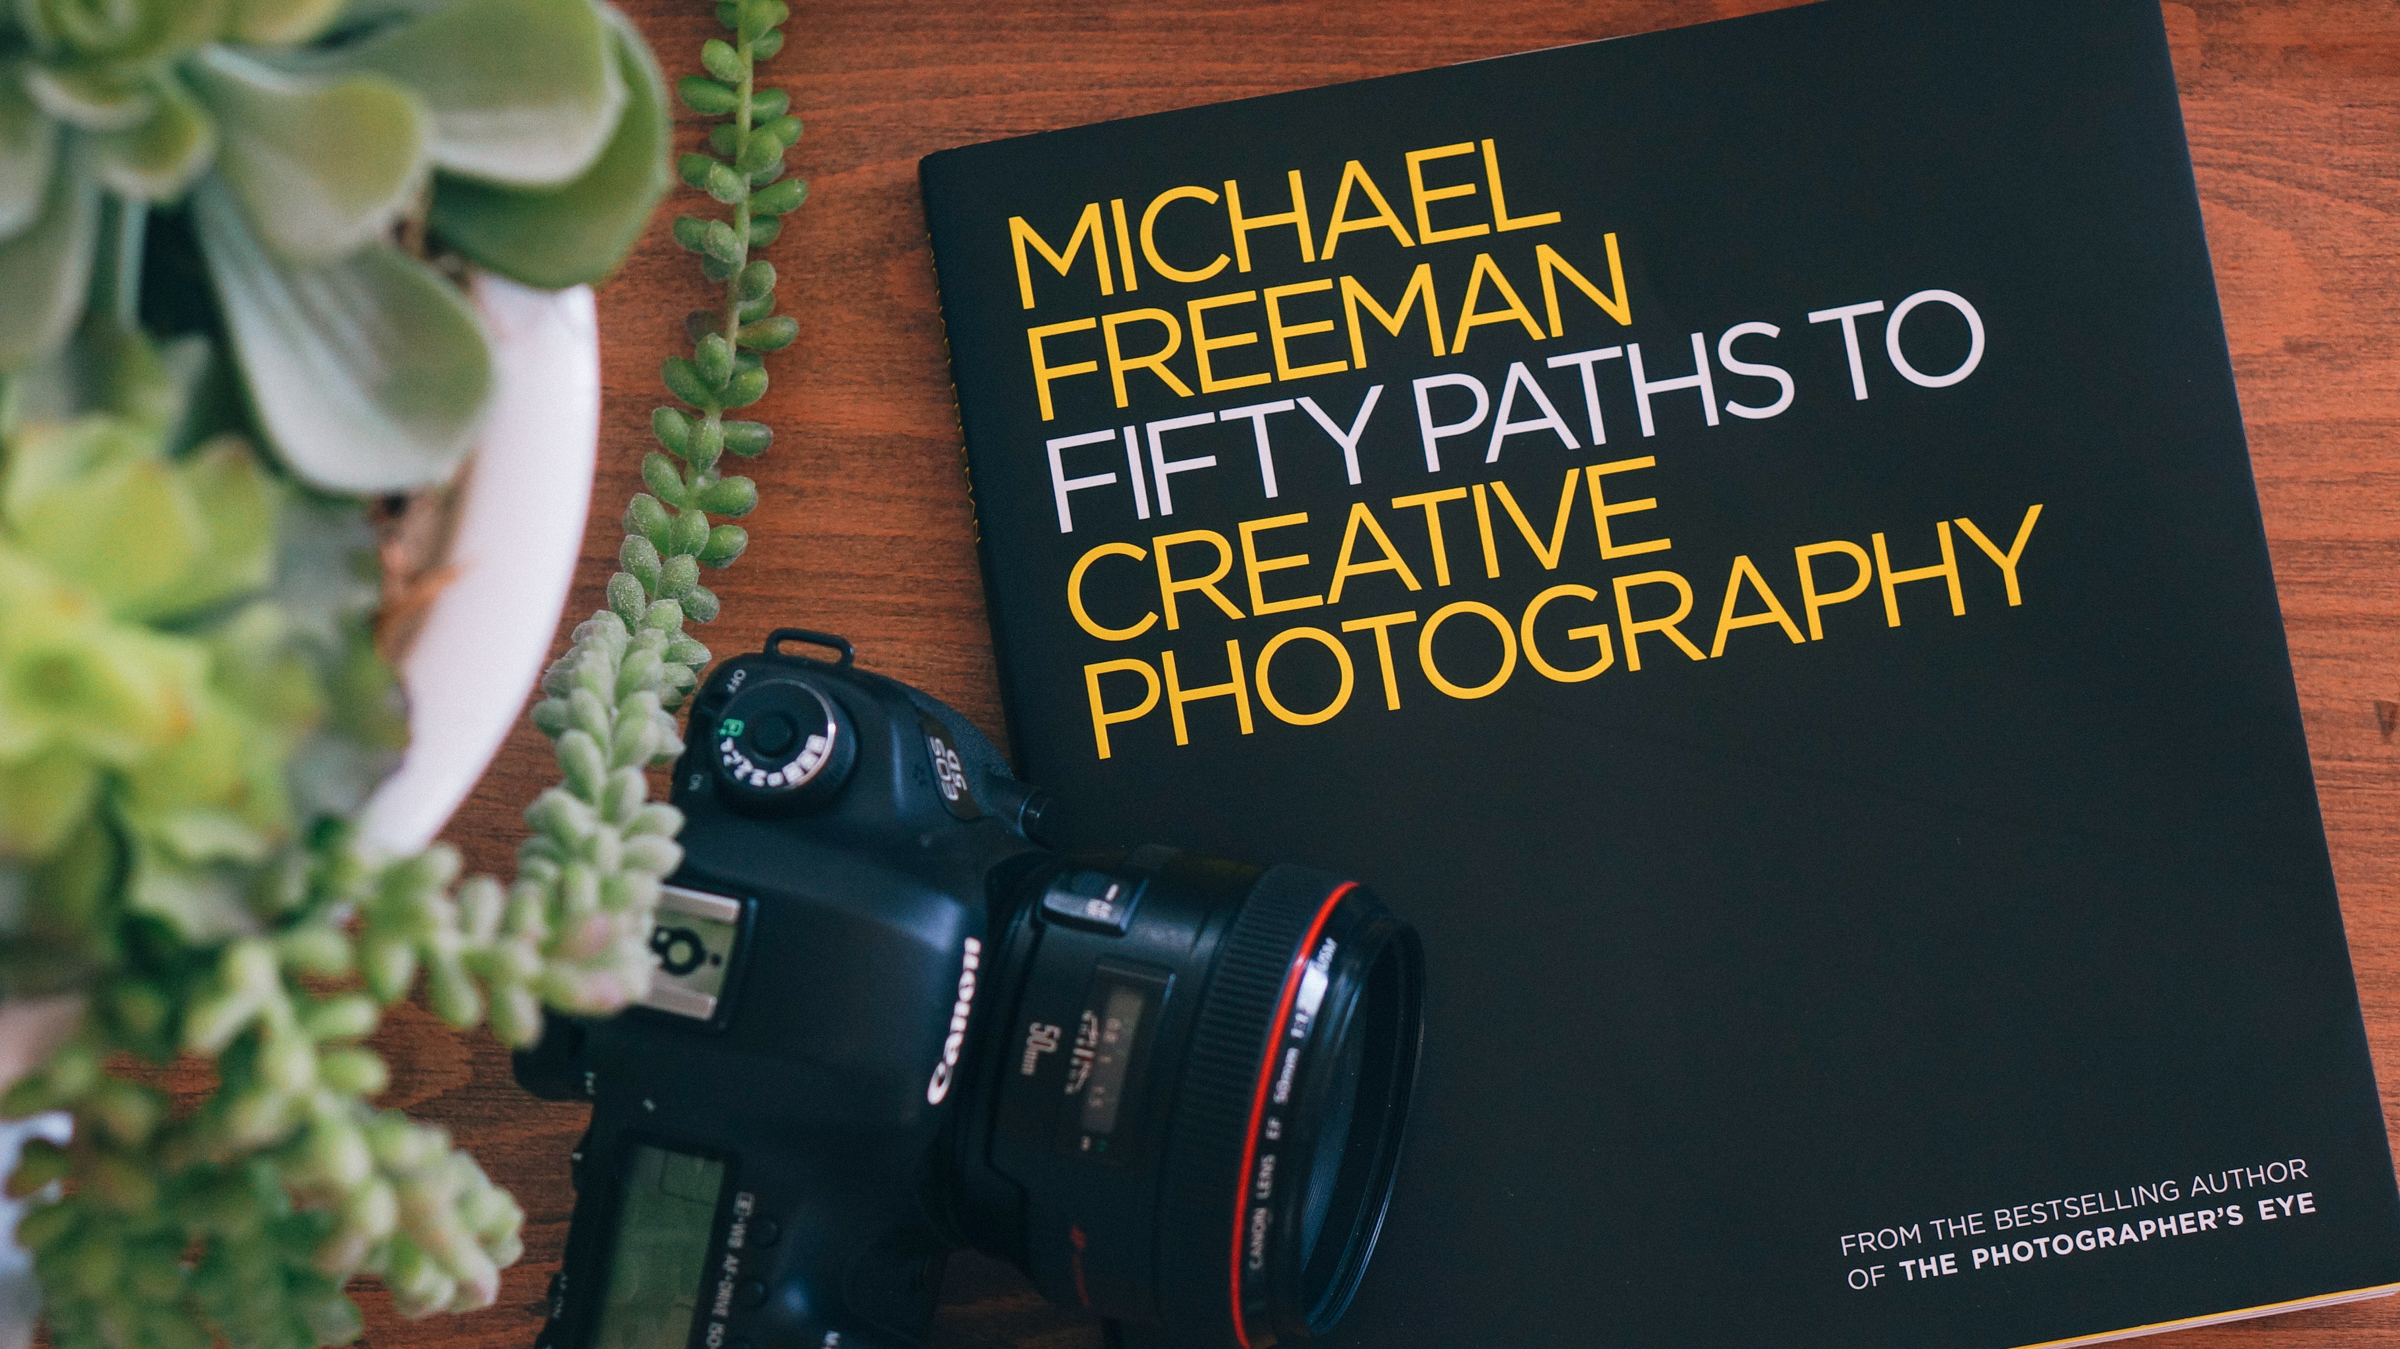 creative-photography-book-02282